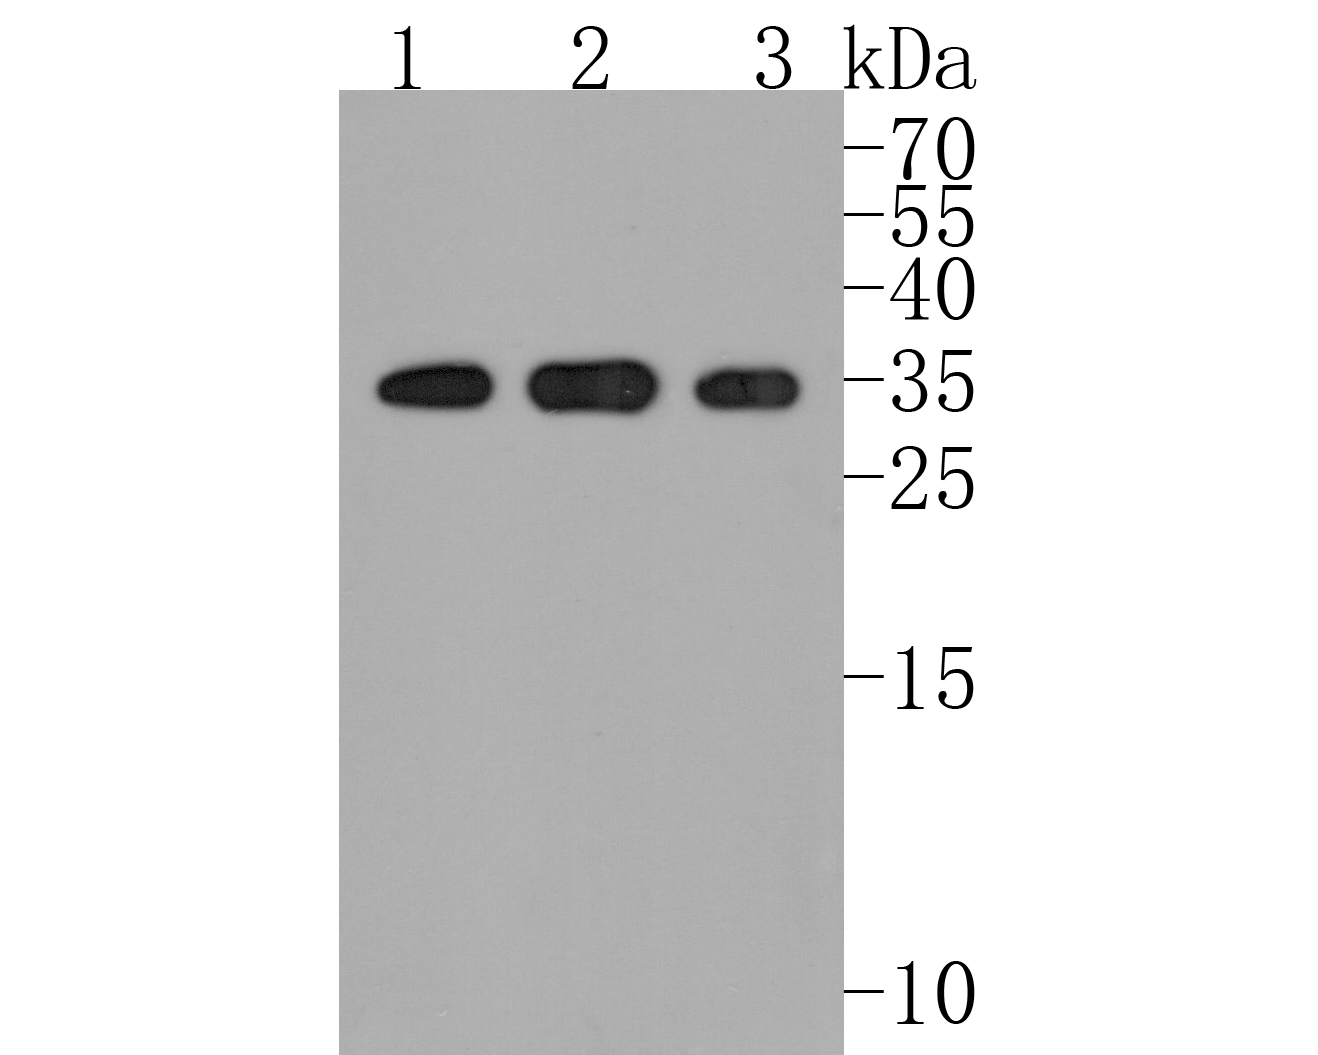 Western blot analysis of STUB1 on different lysates. Proteins were transferred to a PVDF membrane and blocked with 5% BSA in PBS for 1 hour at room temperature. The primary antibody (ET7108-65, 1/500) was used in 5% BSA at room temperature for 2 hours. Goat Anti-Rabbit IgG - HRP Secondary Antibody (HA1001) at 1:5,000 dilution was used for 1 hour at room temperature.<br /> Positive control: <br /> Lane 1: 293 cell lysate<br /> Lane 2: MCF-7 cell lysate<br /> Lane 3: SK-Br-3 cell lysate